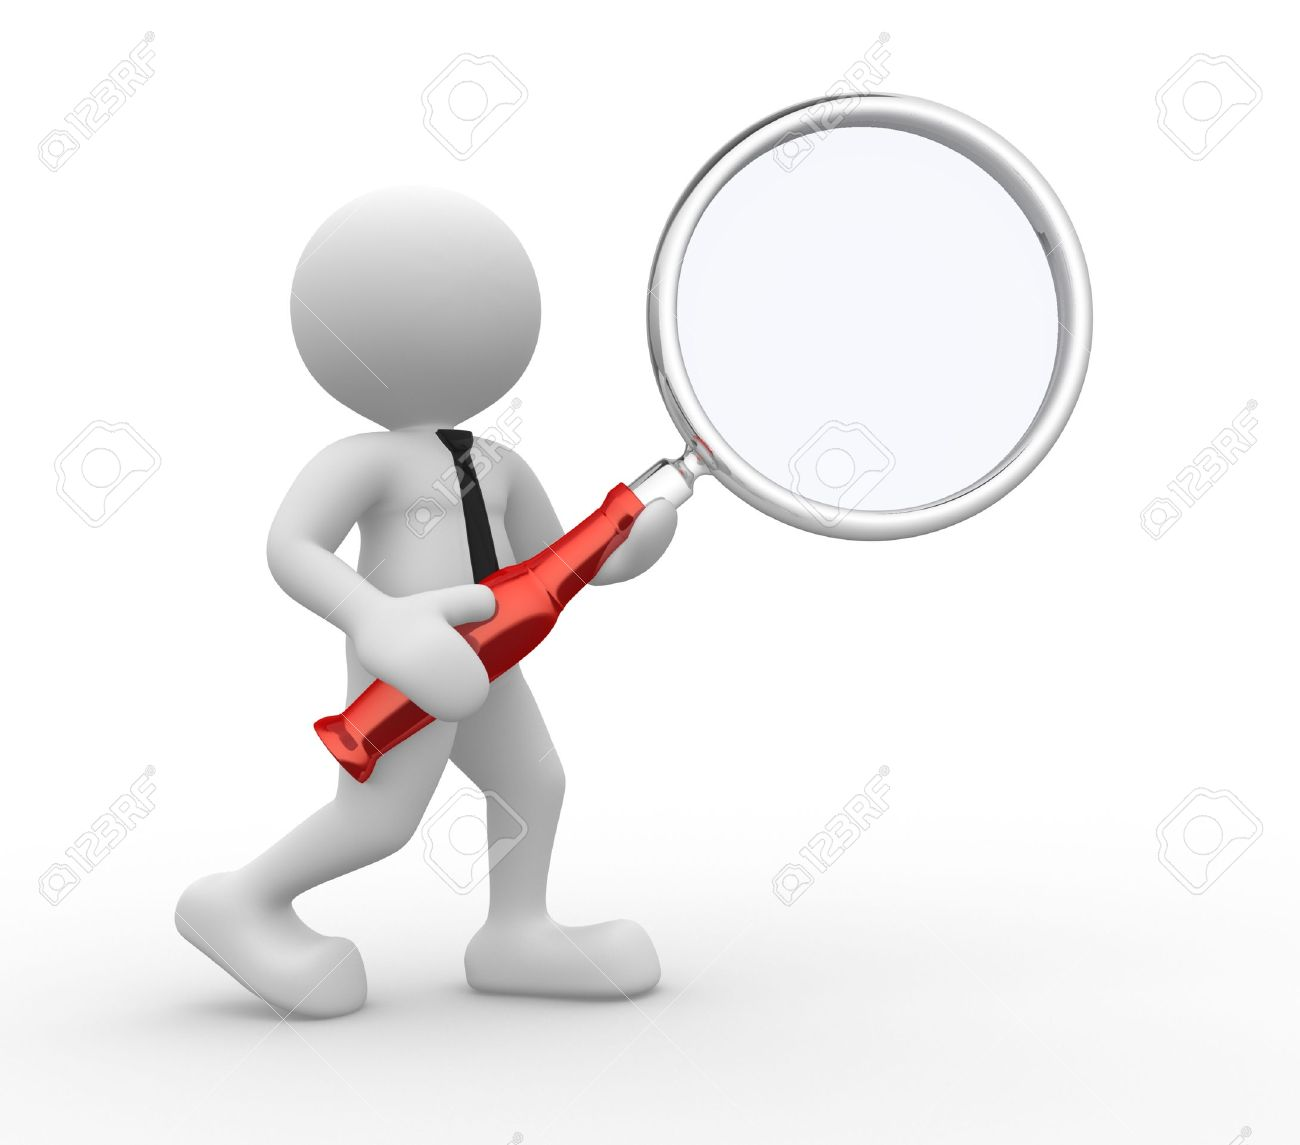 3d people - man, person  with magnifying glass Standard-Bild - 17532603